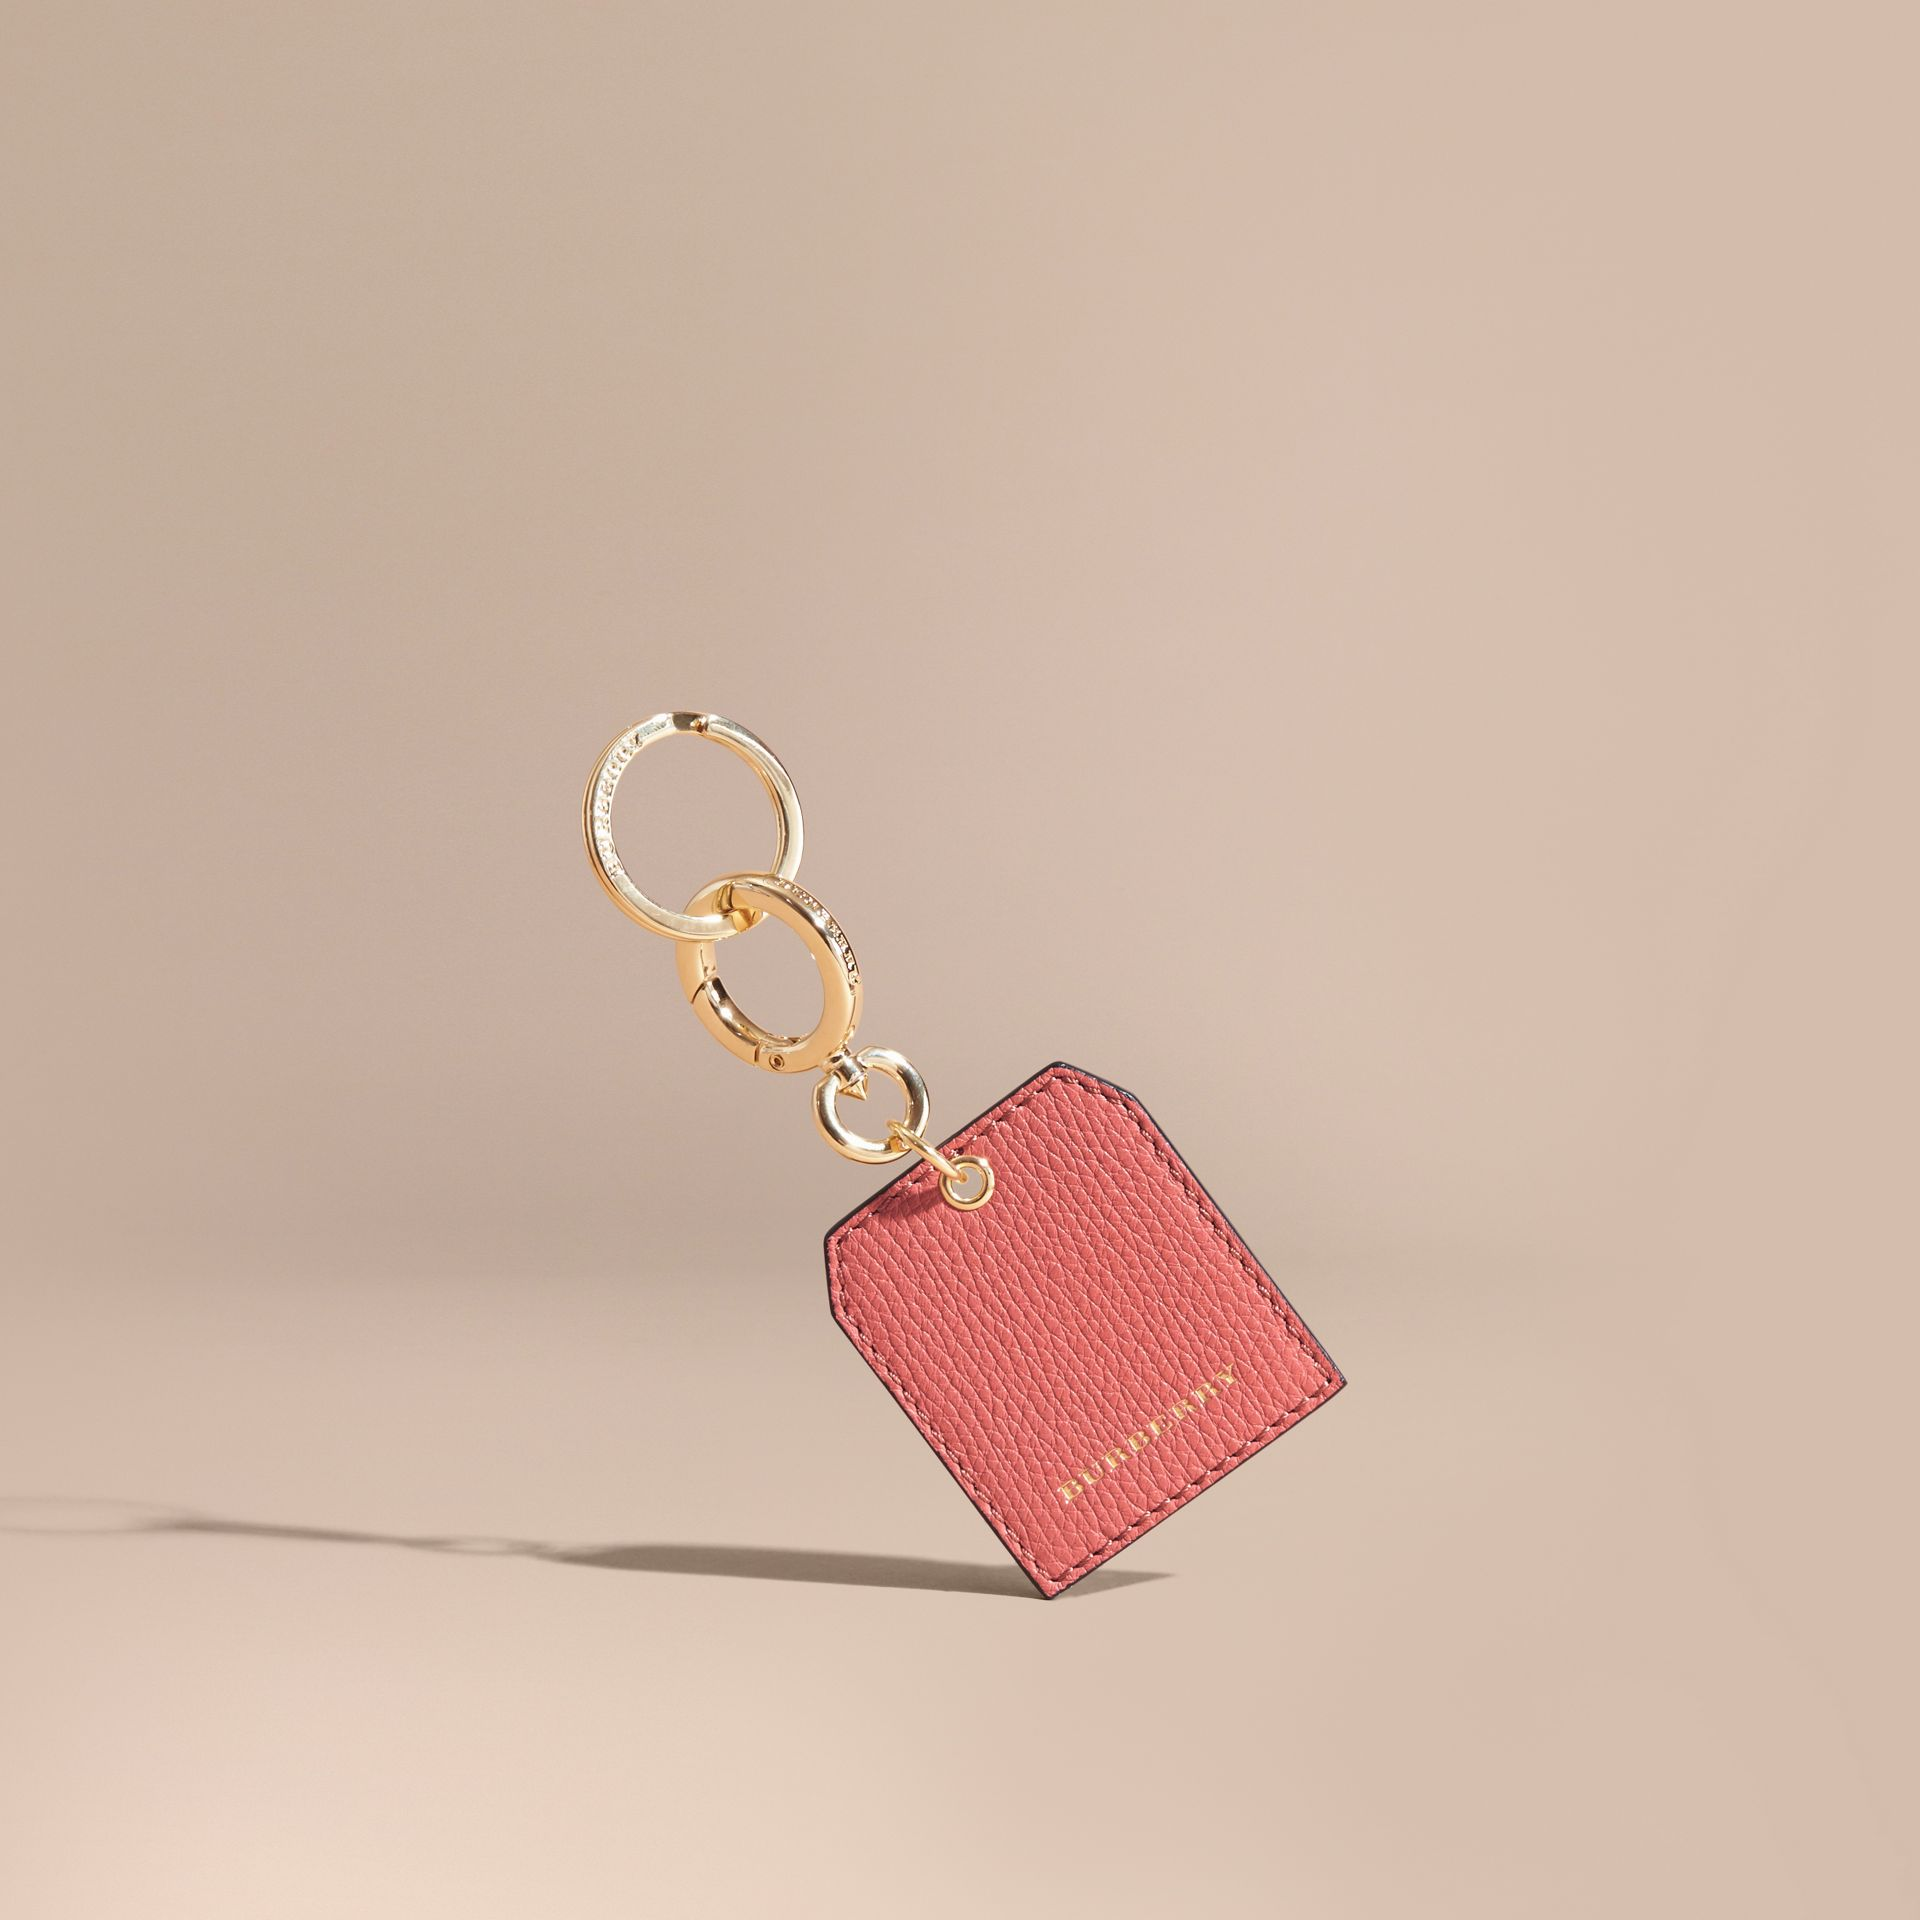 Grainy Leather Key Charm in Copper Pink - Women | Burberry - gallery image 1